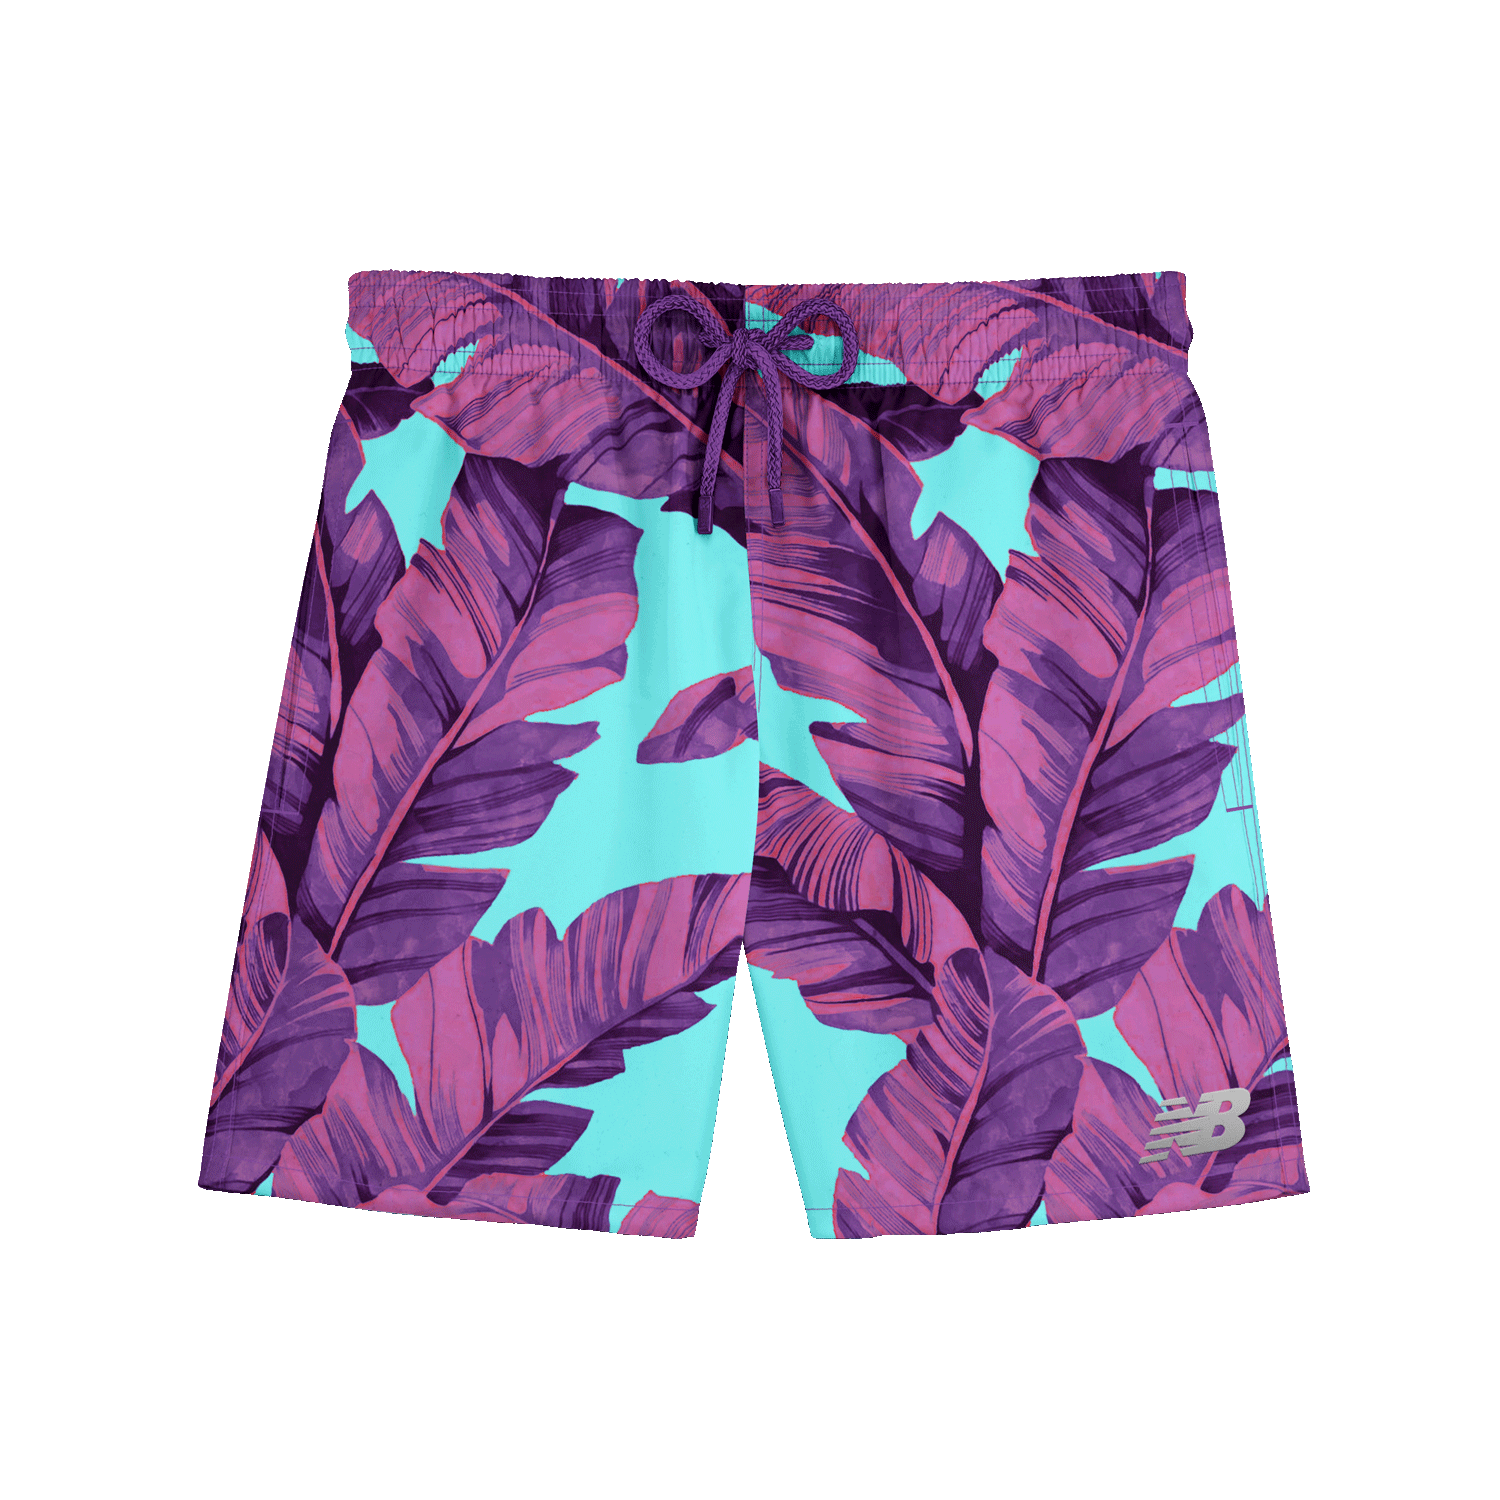 New_Balance_Swimsuits_7.png